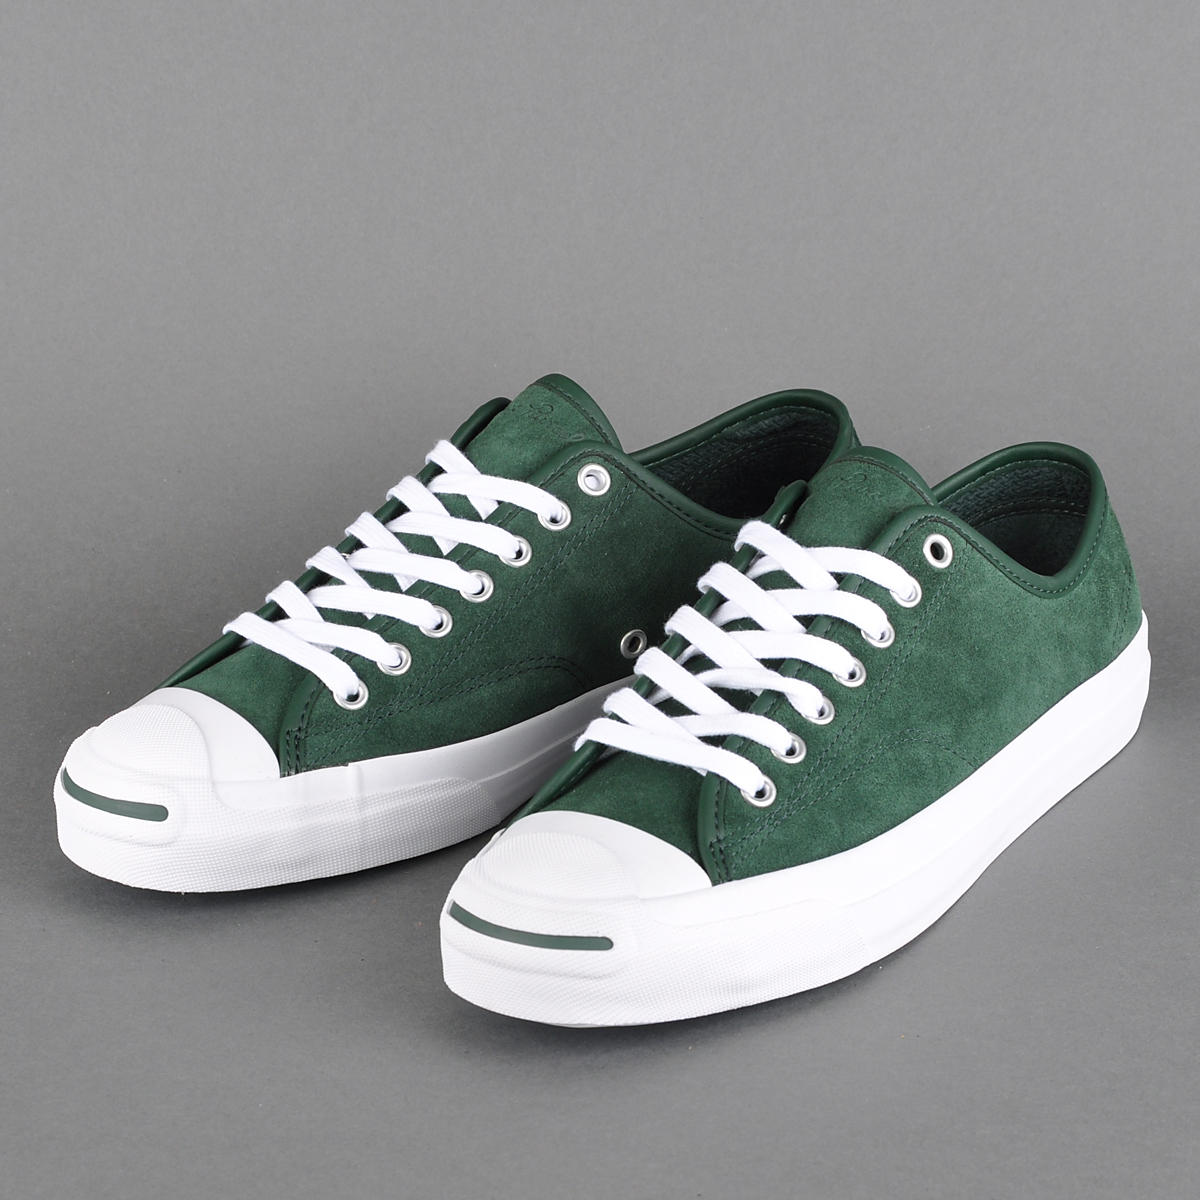 23ab23fcbfb0 converse jack purcell green